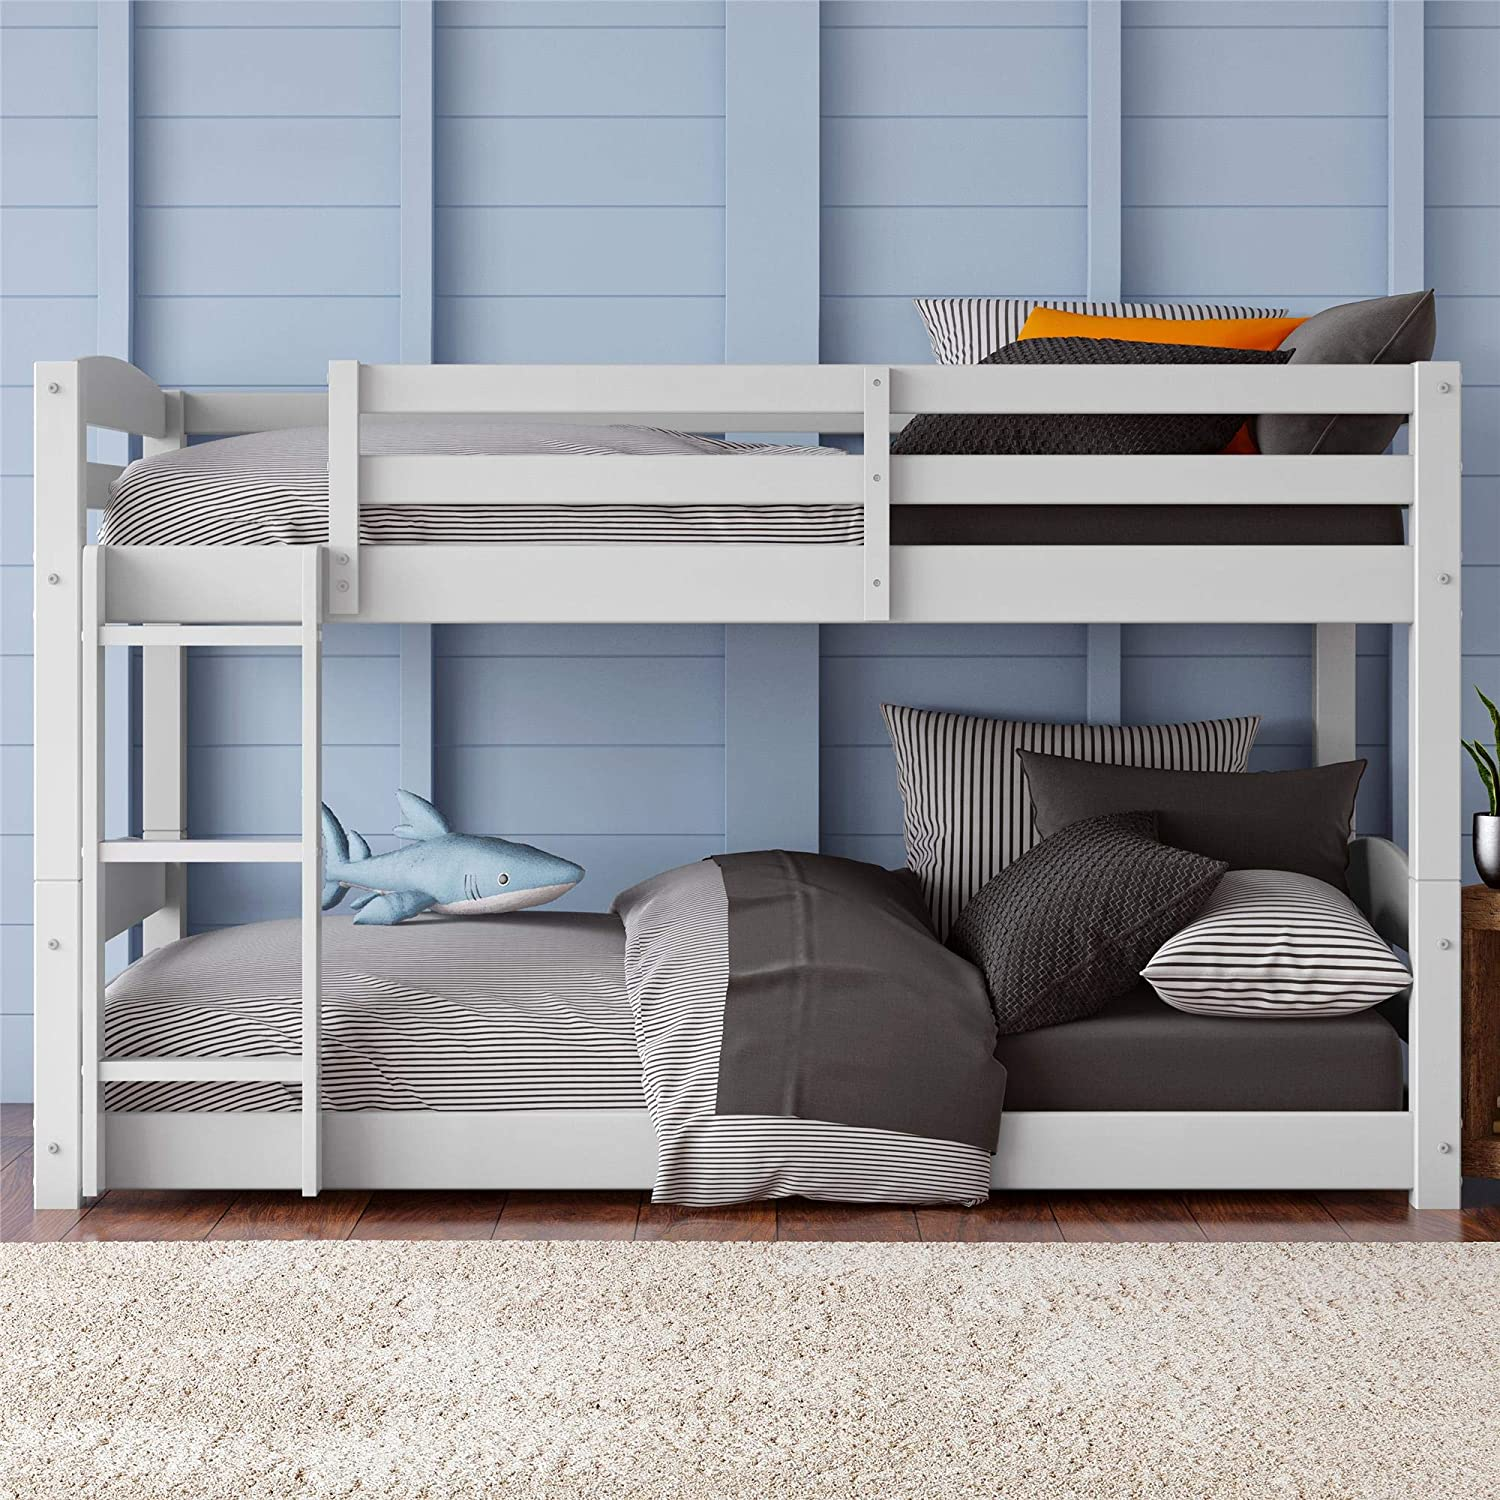 Top 7 Best Bunk Beds for Toddlers Reviews in 2020 5